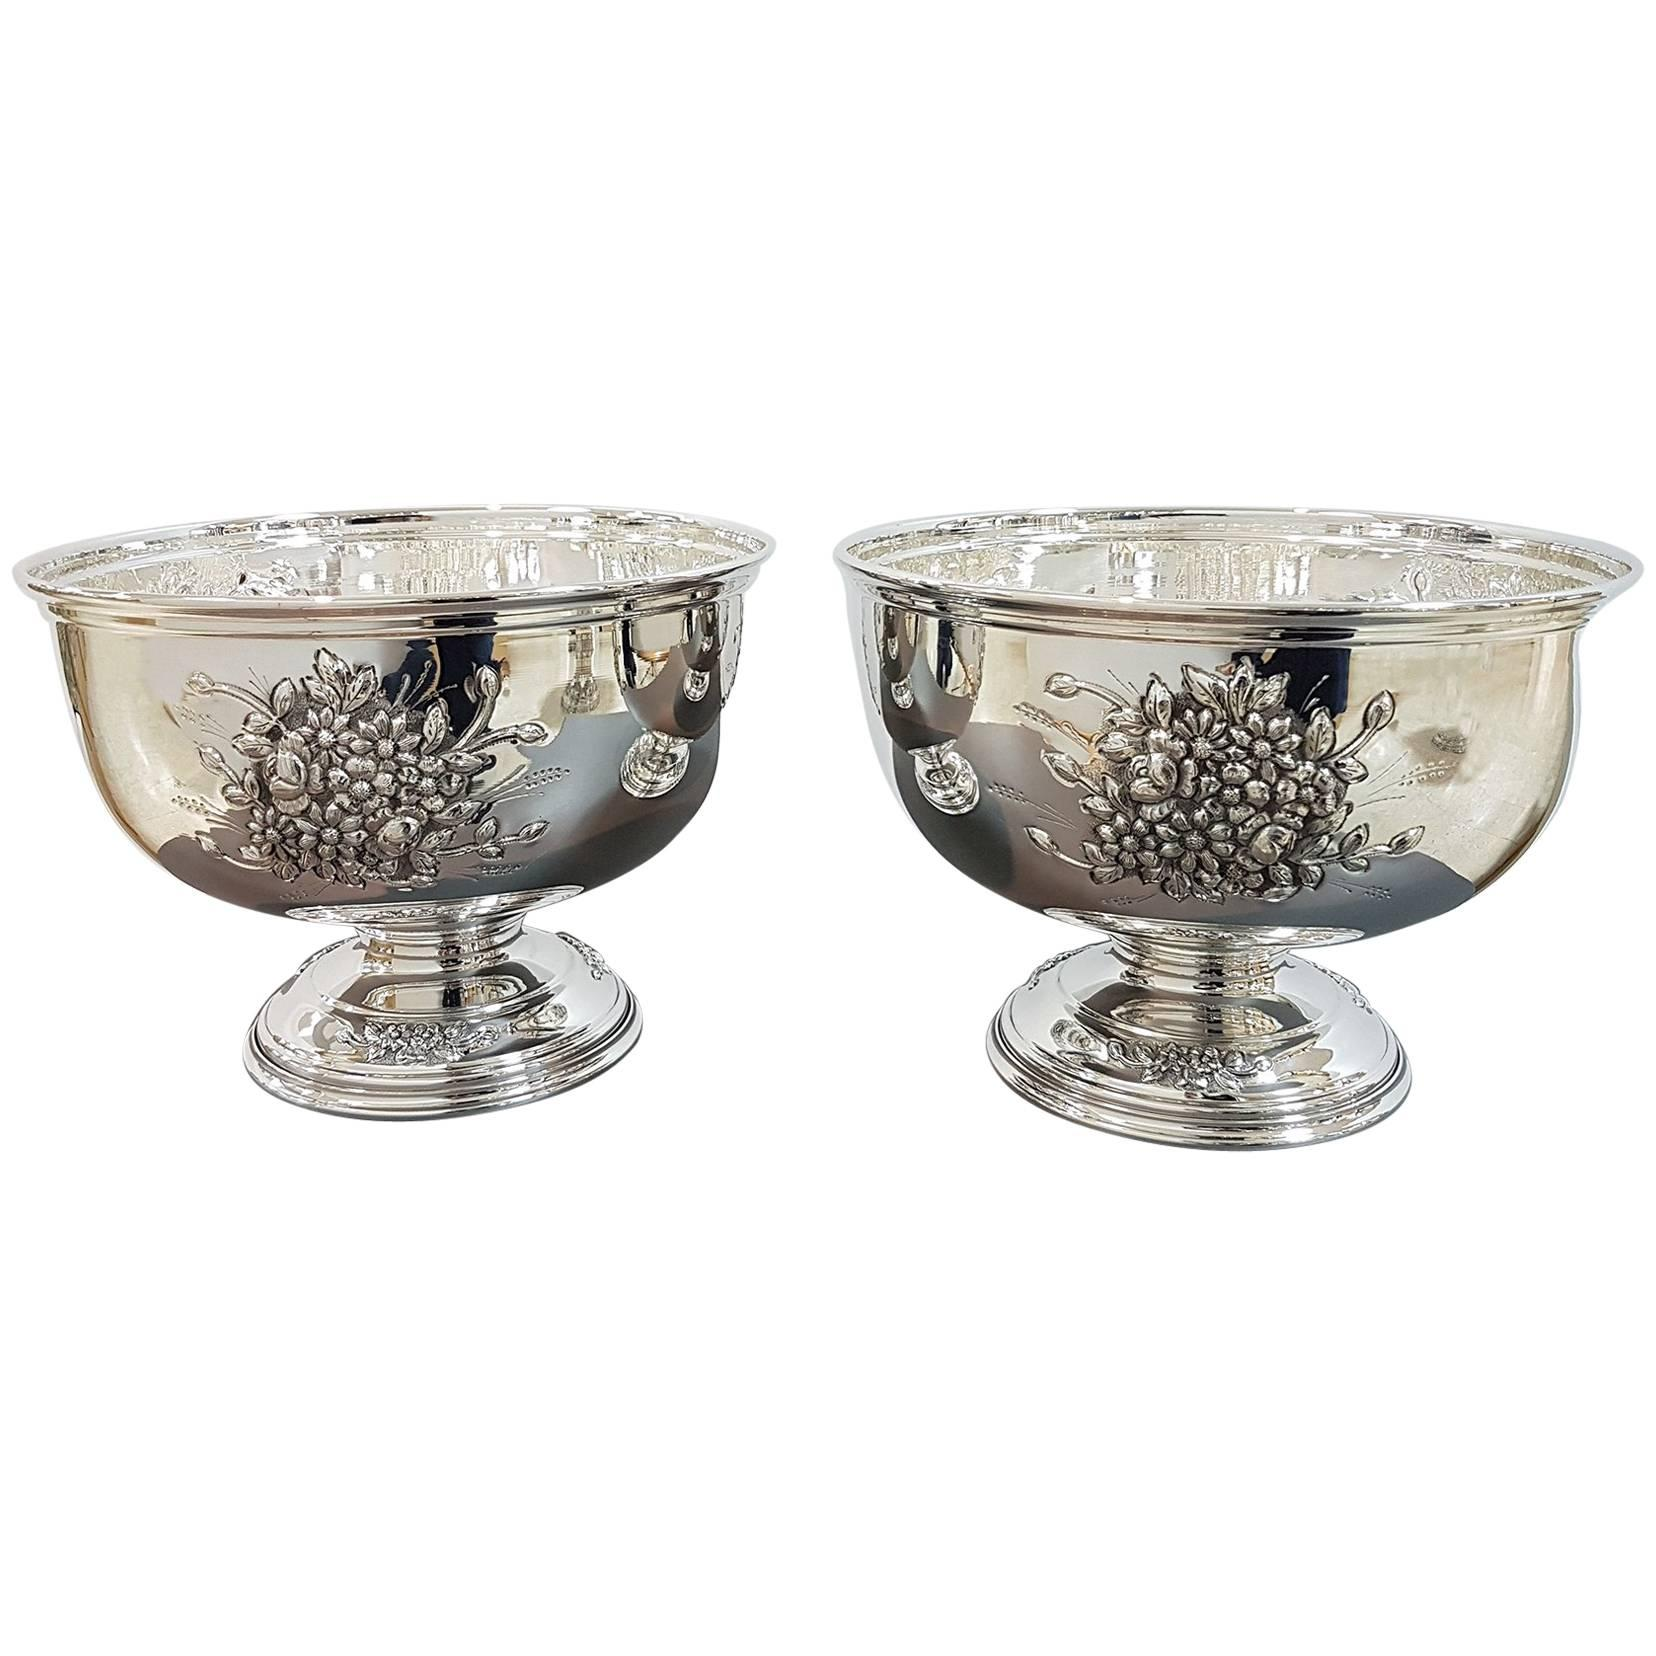 20th Century Italian Silver Centerpieces Embossed and Chiselled with Flowers